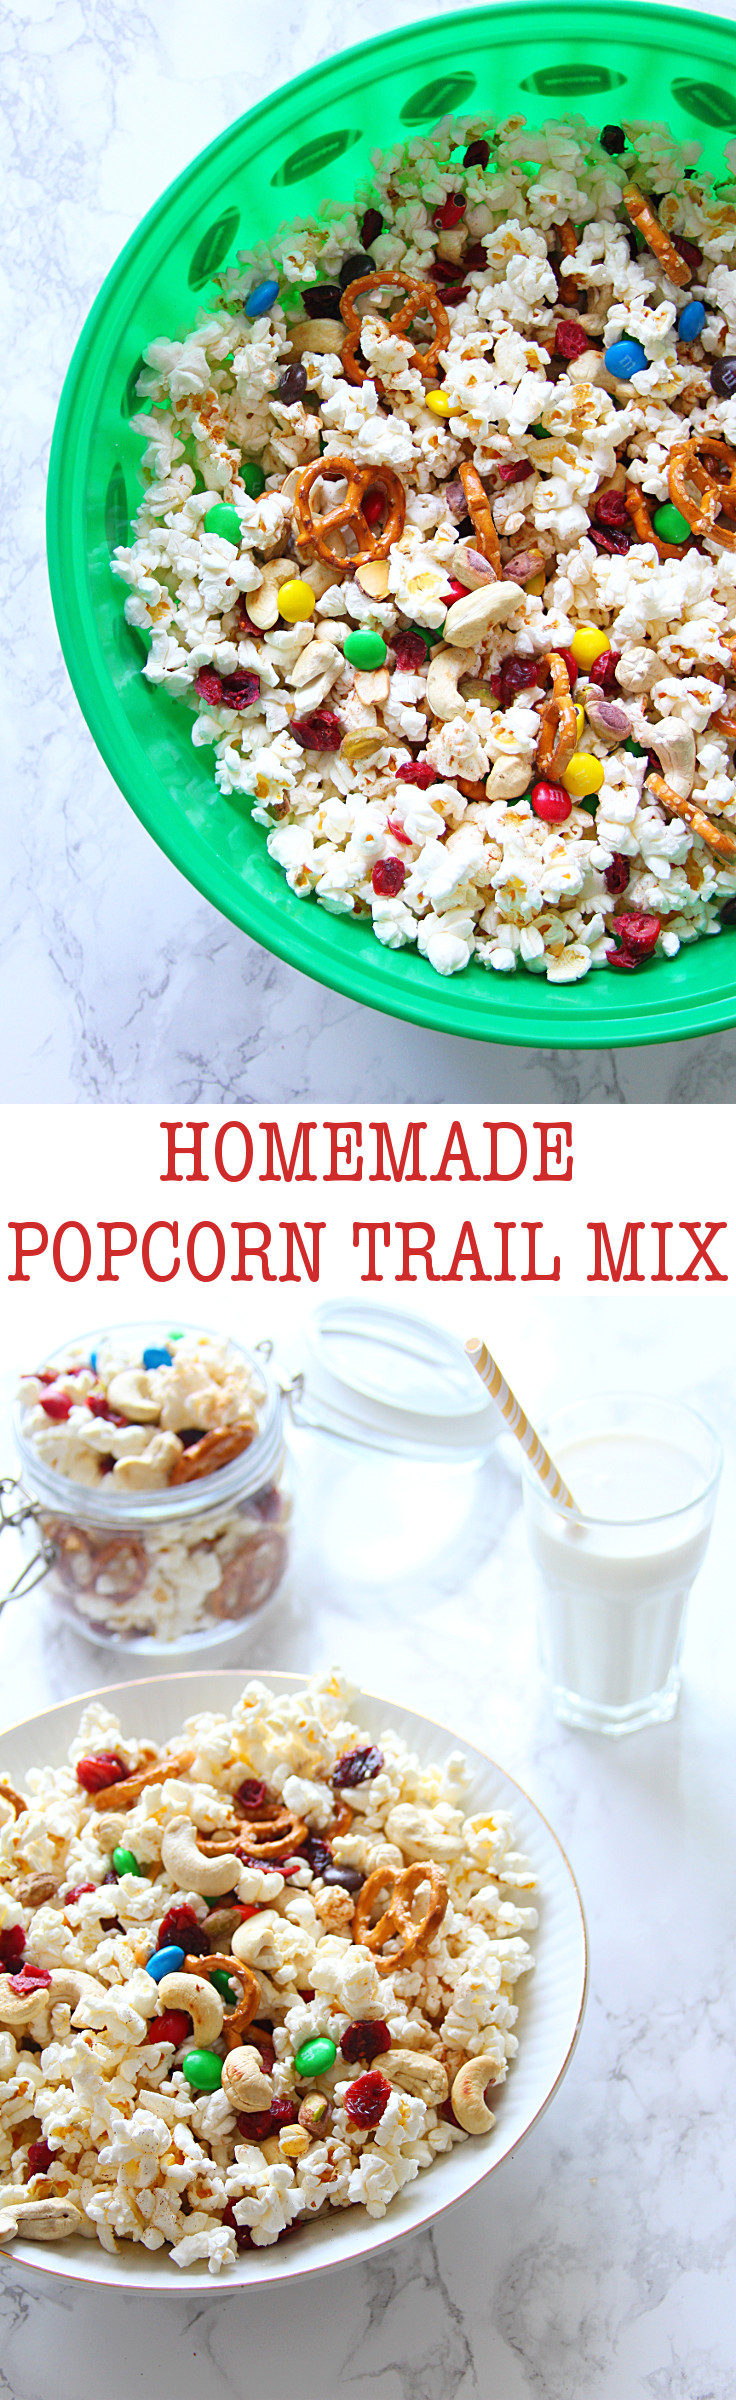 Looking for a quick after-school snack option that even your kids can help make? This delightful Popcorn Trail Mix is the thing that dreams are made of!